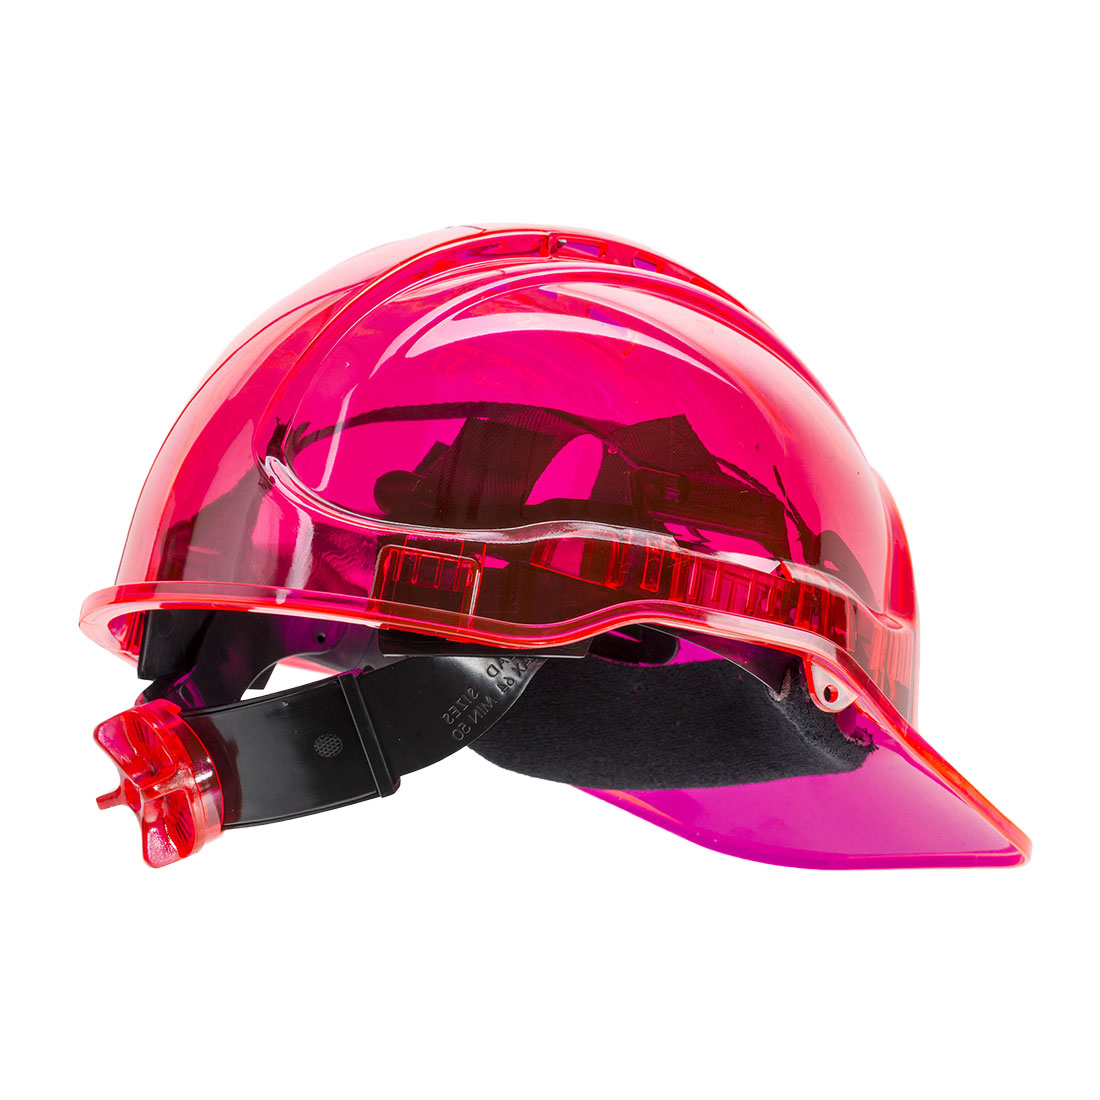 Head Protection, Safety Helmet